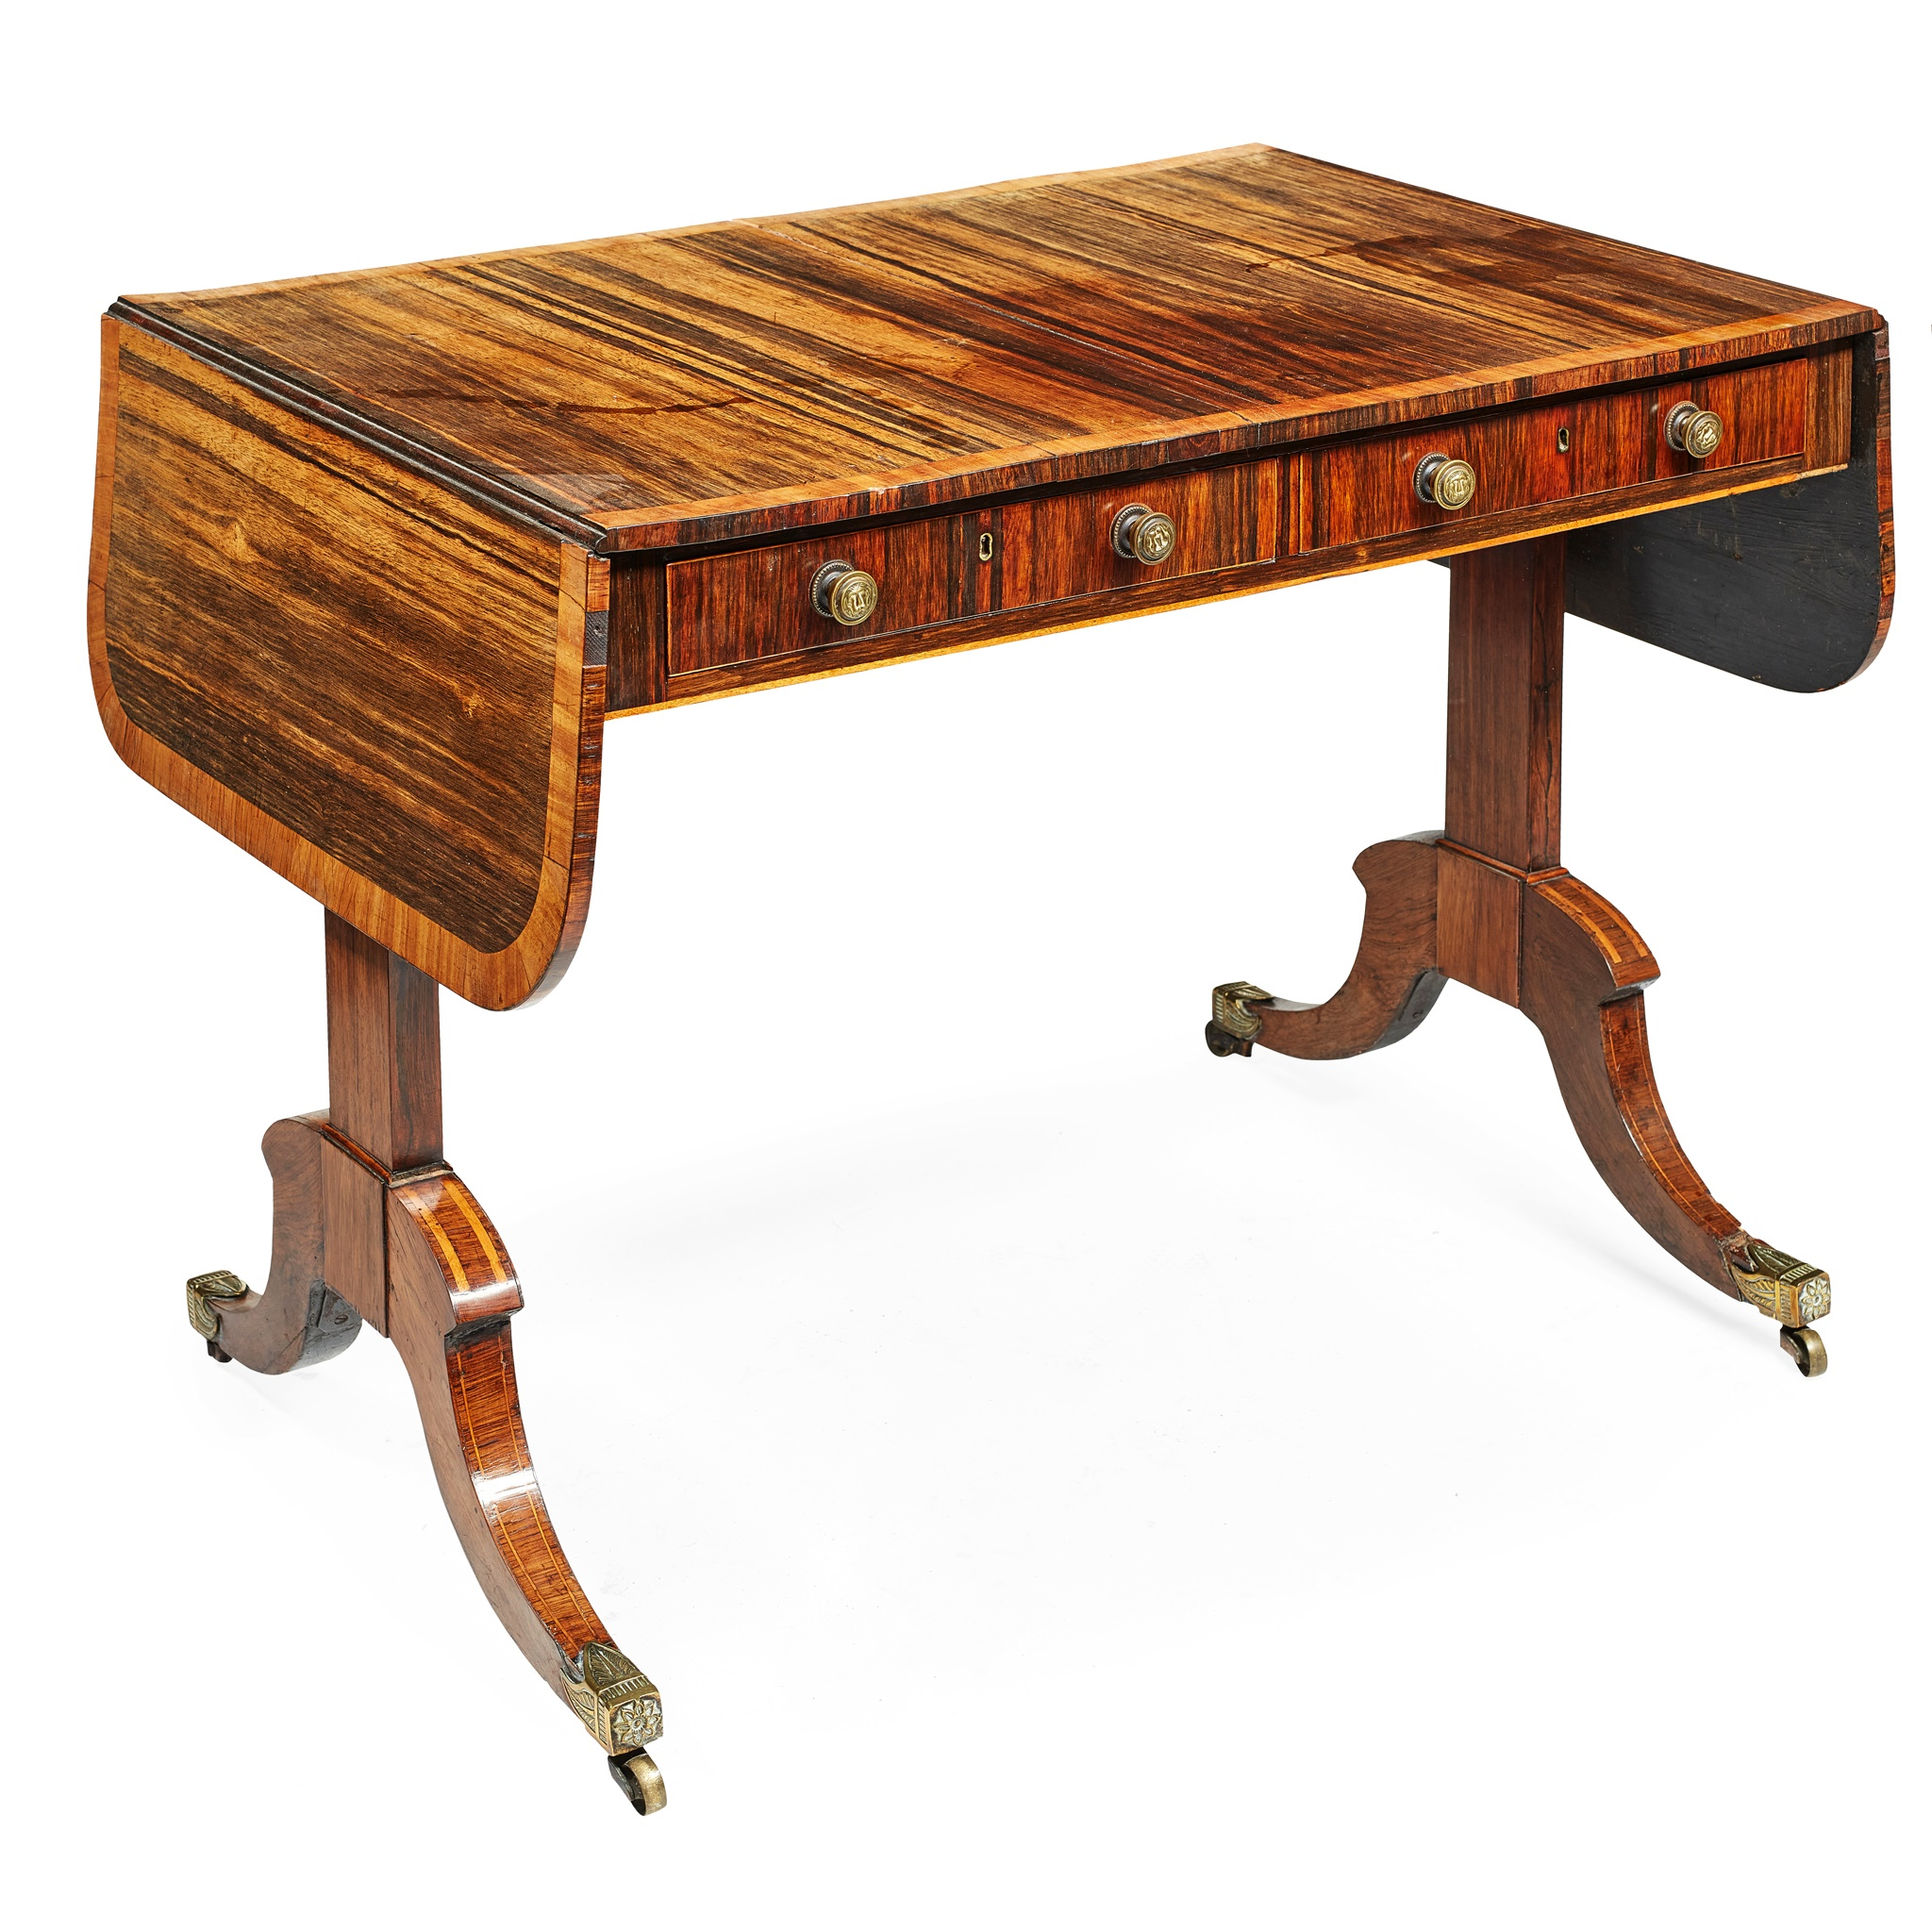 REGENCY ZEBRAWOOD AND KINGWOOD SOFA TABLE EARLY 19TH CENTURY